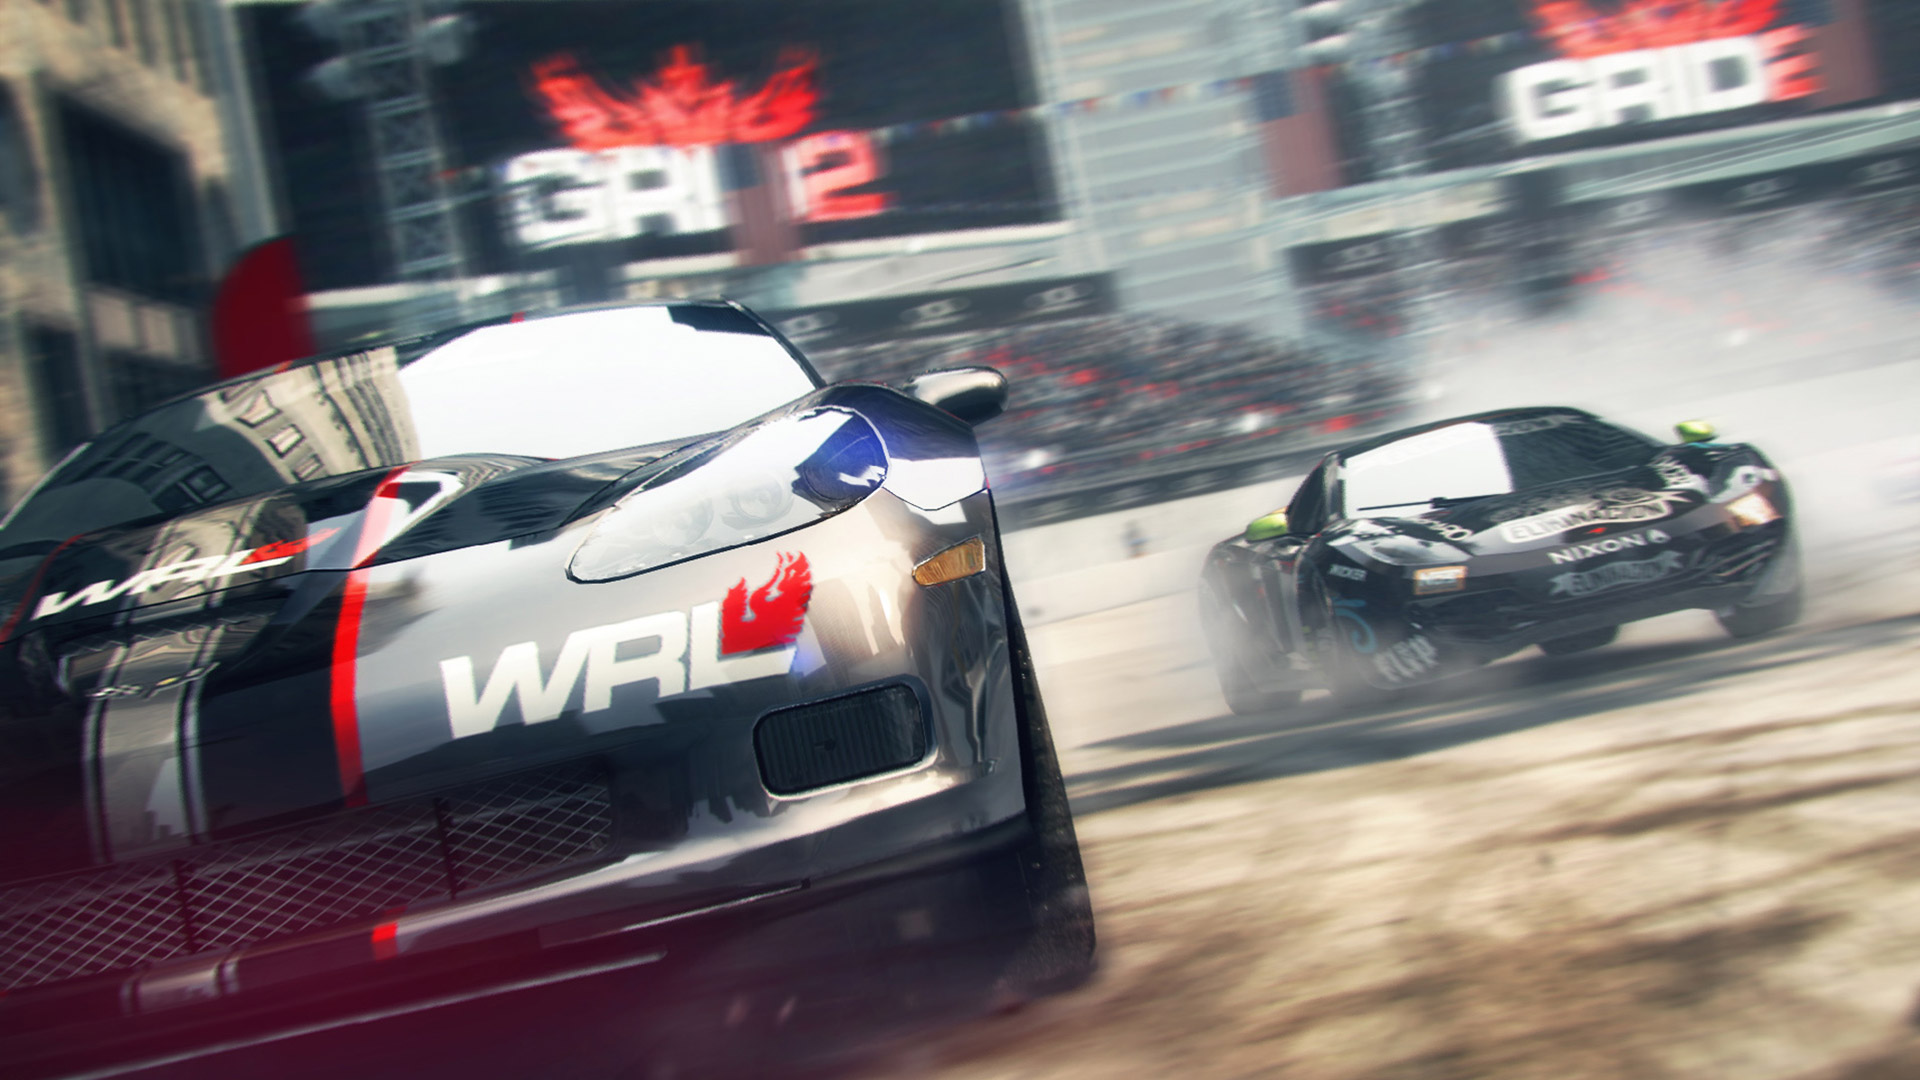 GRID 2 Wallpaper in 1920x1080